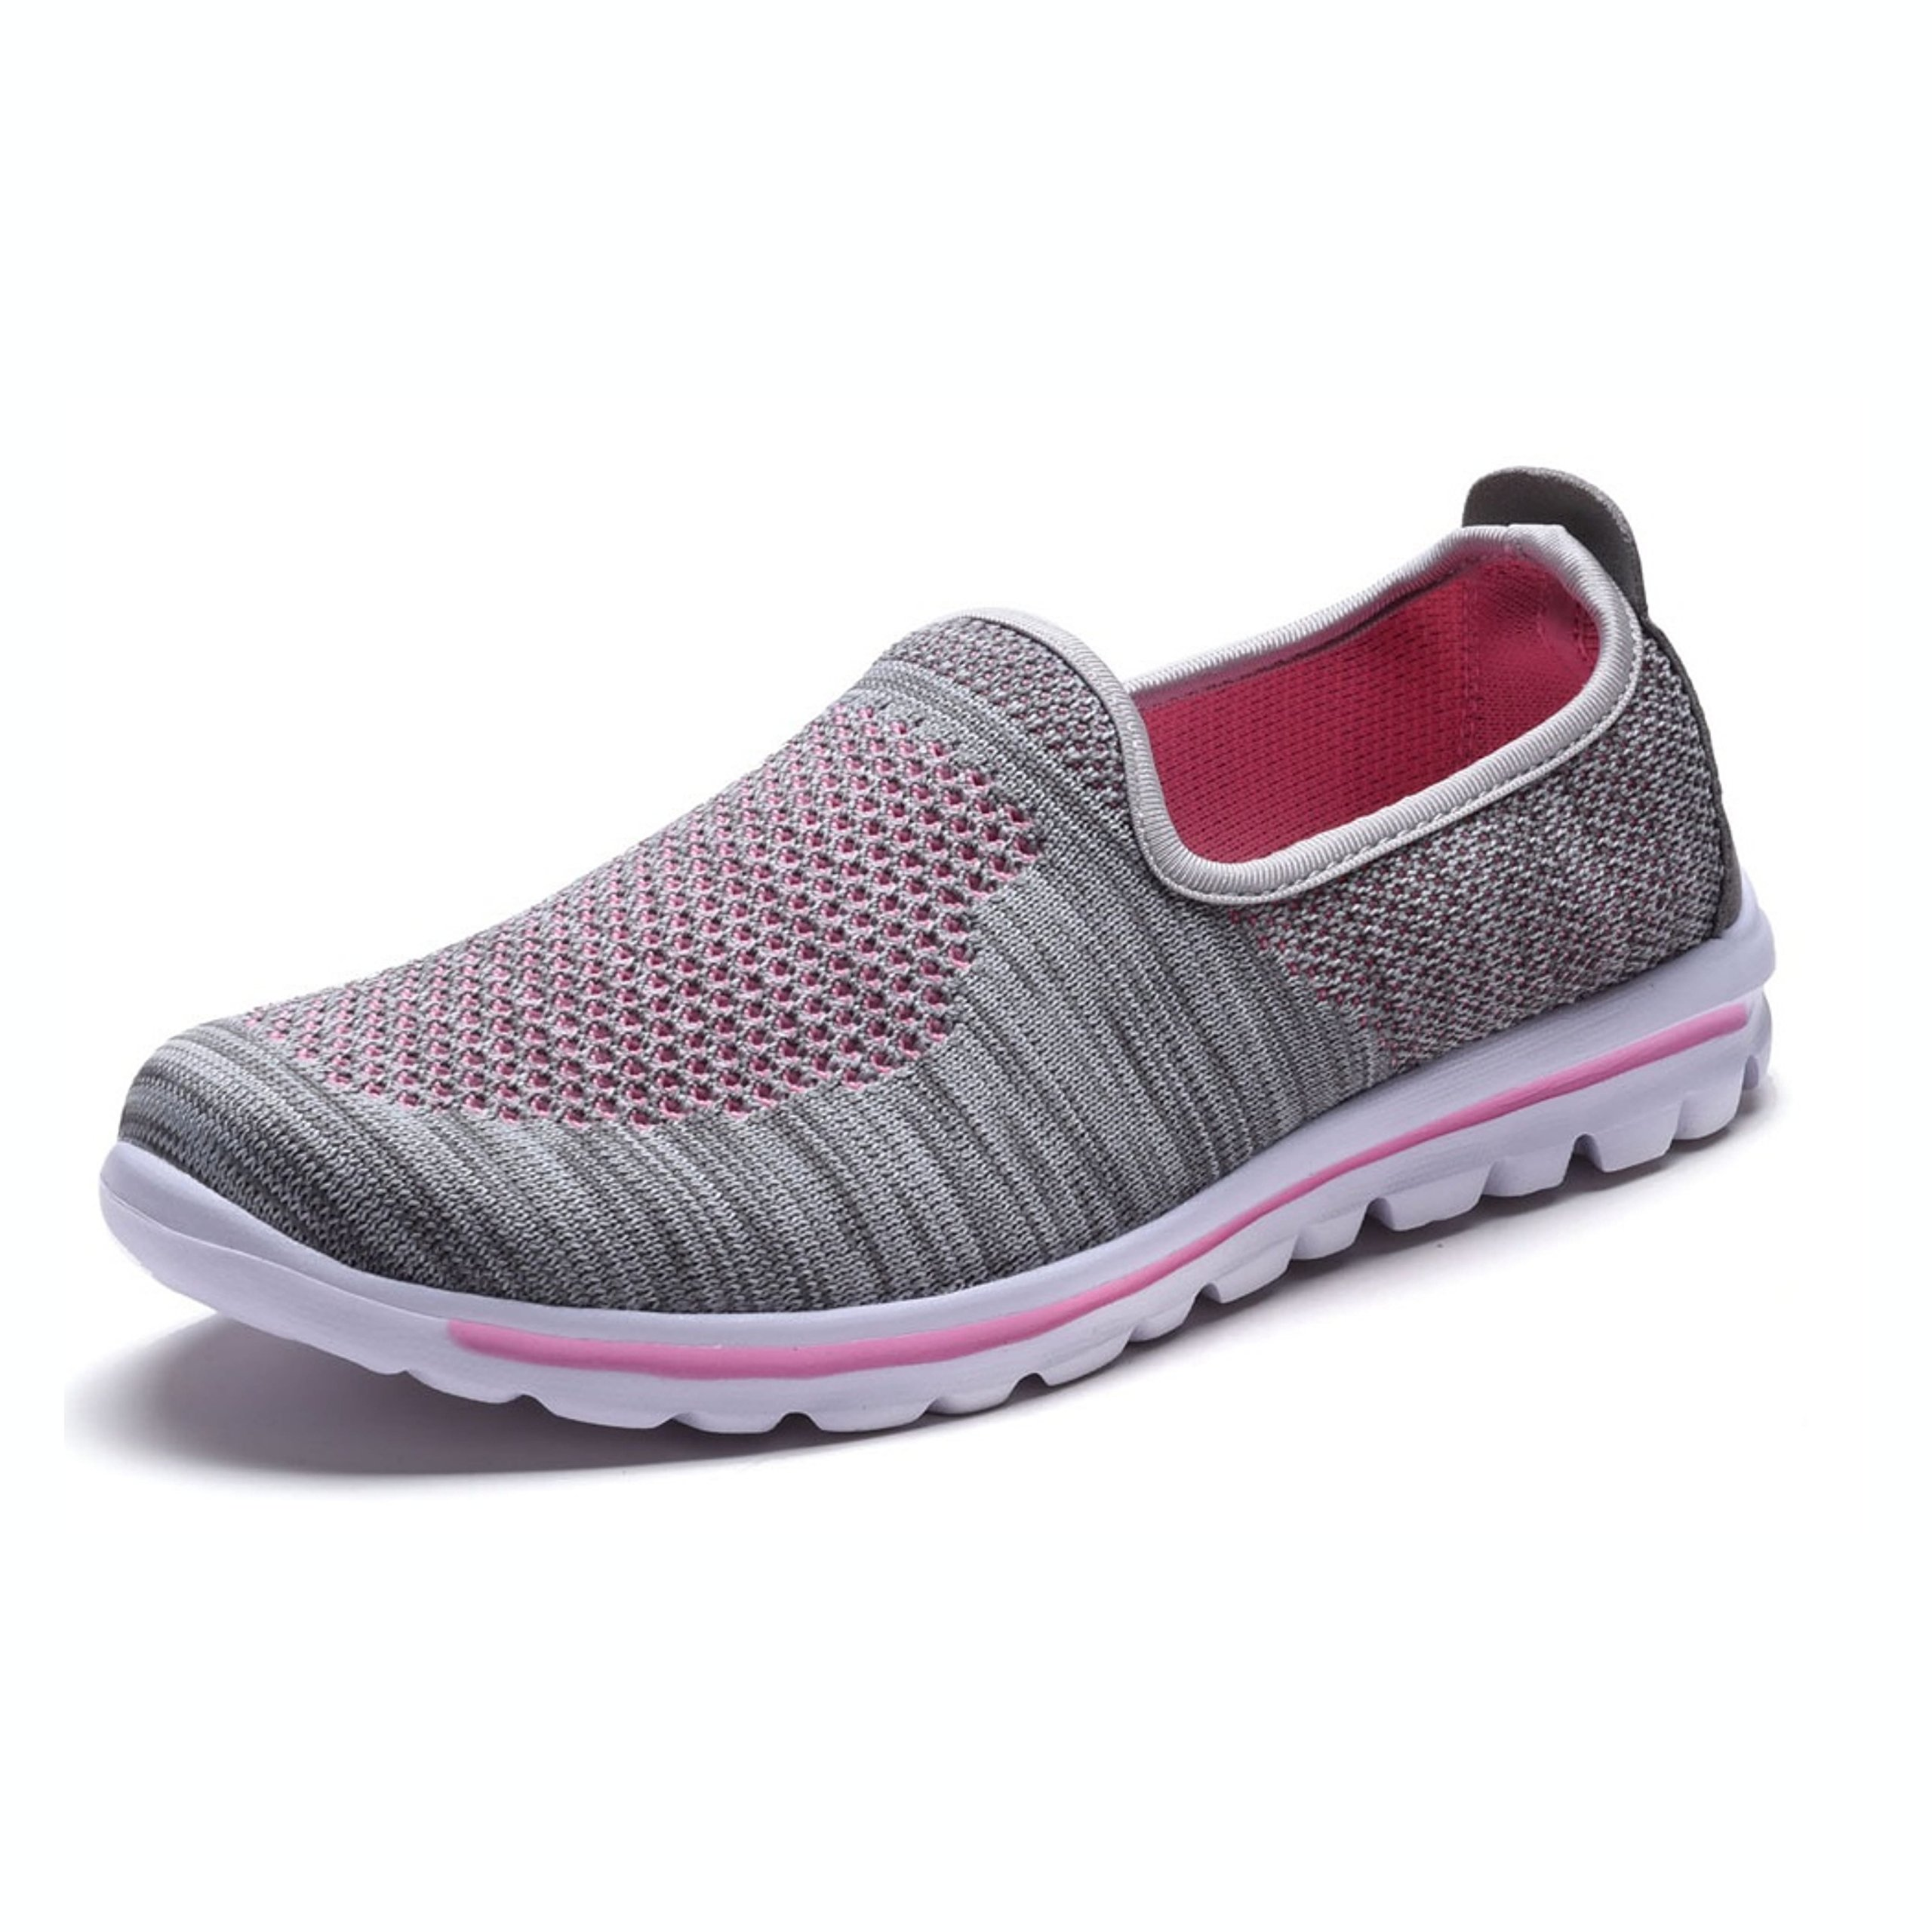 DailyShoes Women's Fit Mesh Slip-on Style Walking Shoes with Memory Foam Insoles- Breathable Mesh - Durable Soles - Reliable Traction - Perfect for Walks and Jogs, Gray Pink Mesh, 5 B(M) US